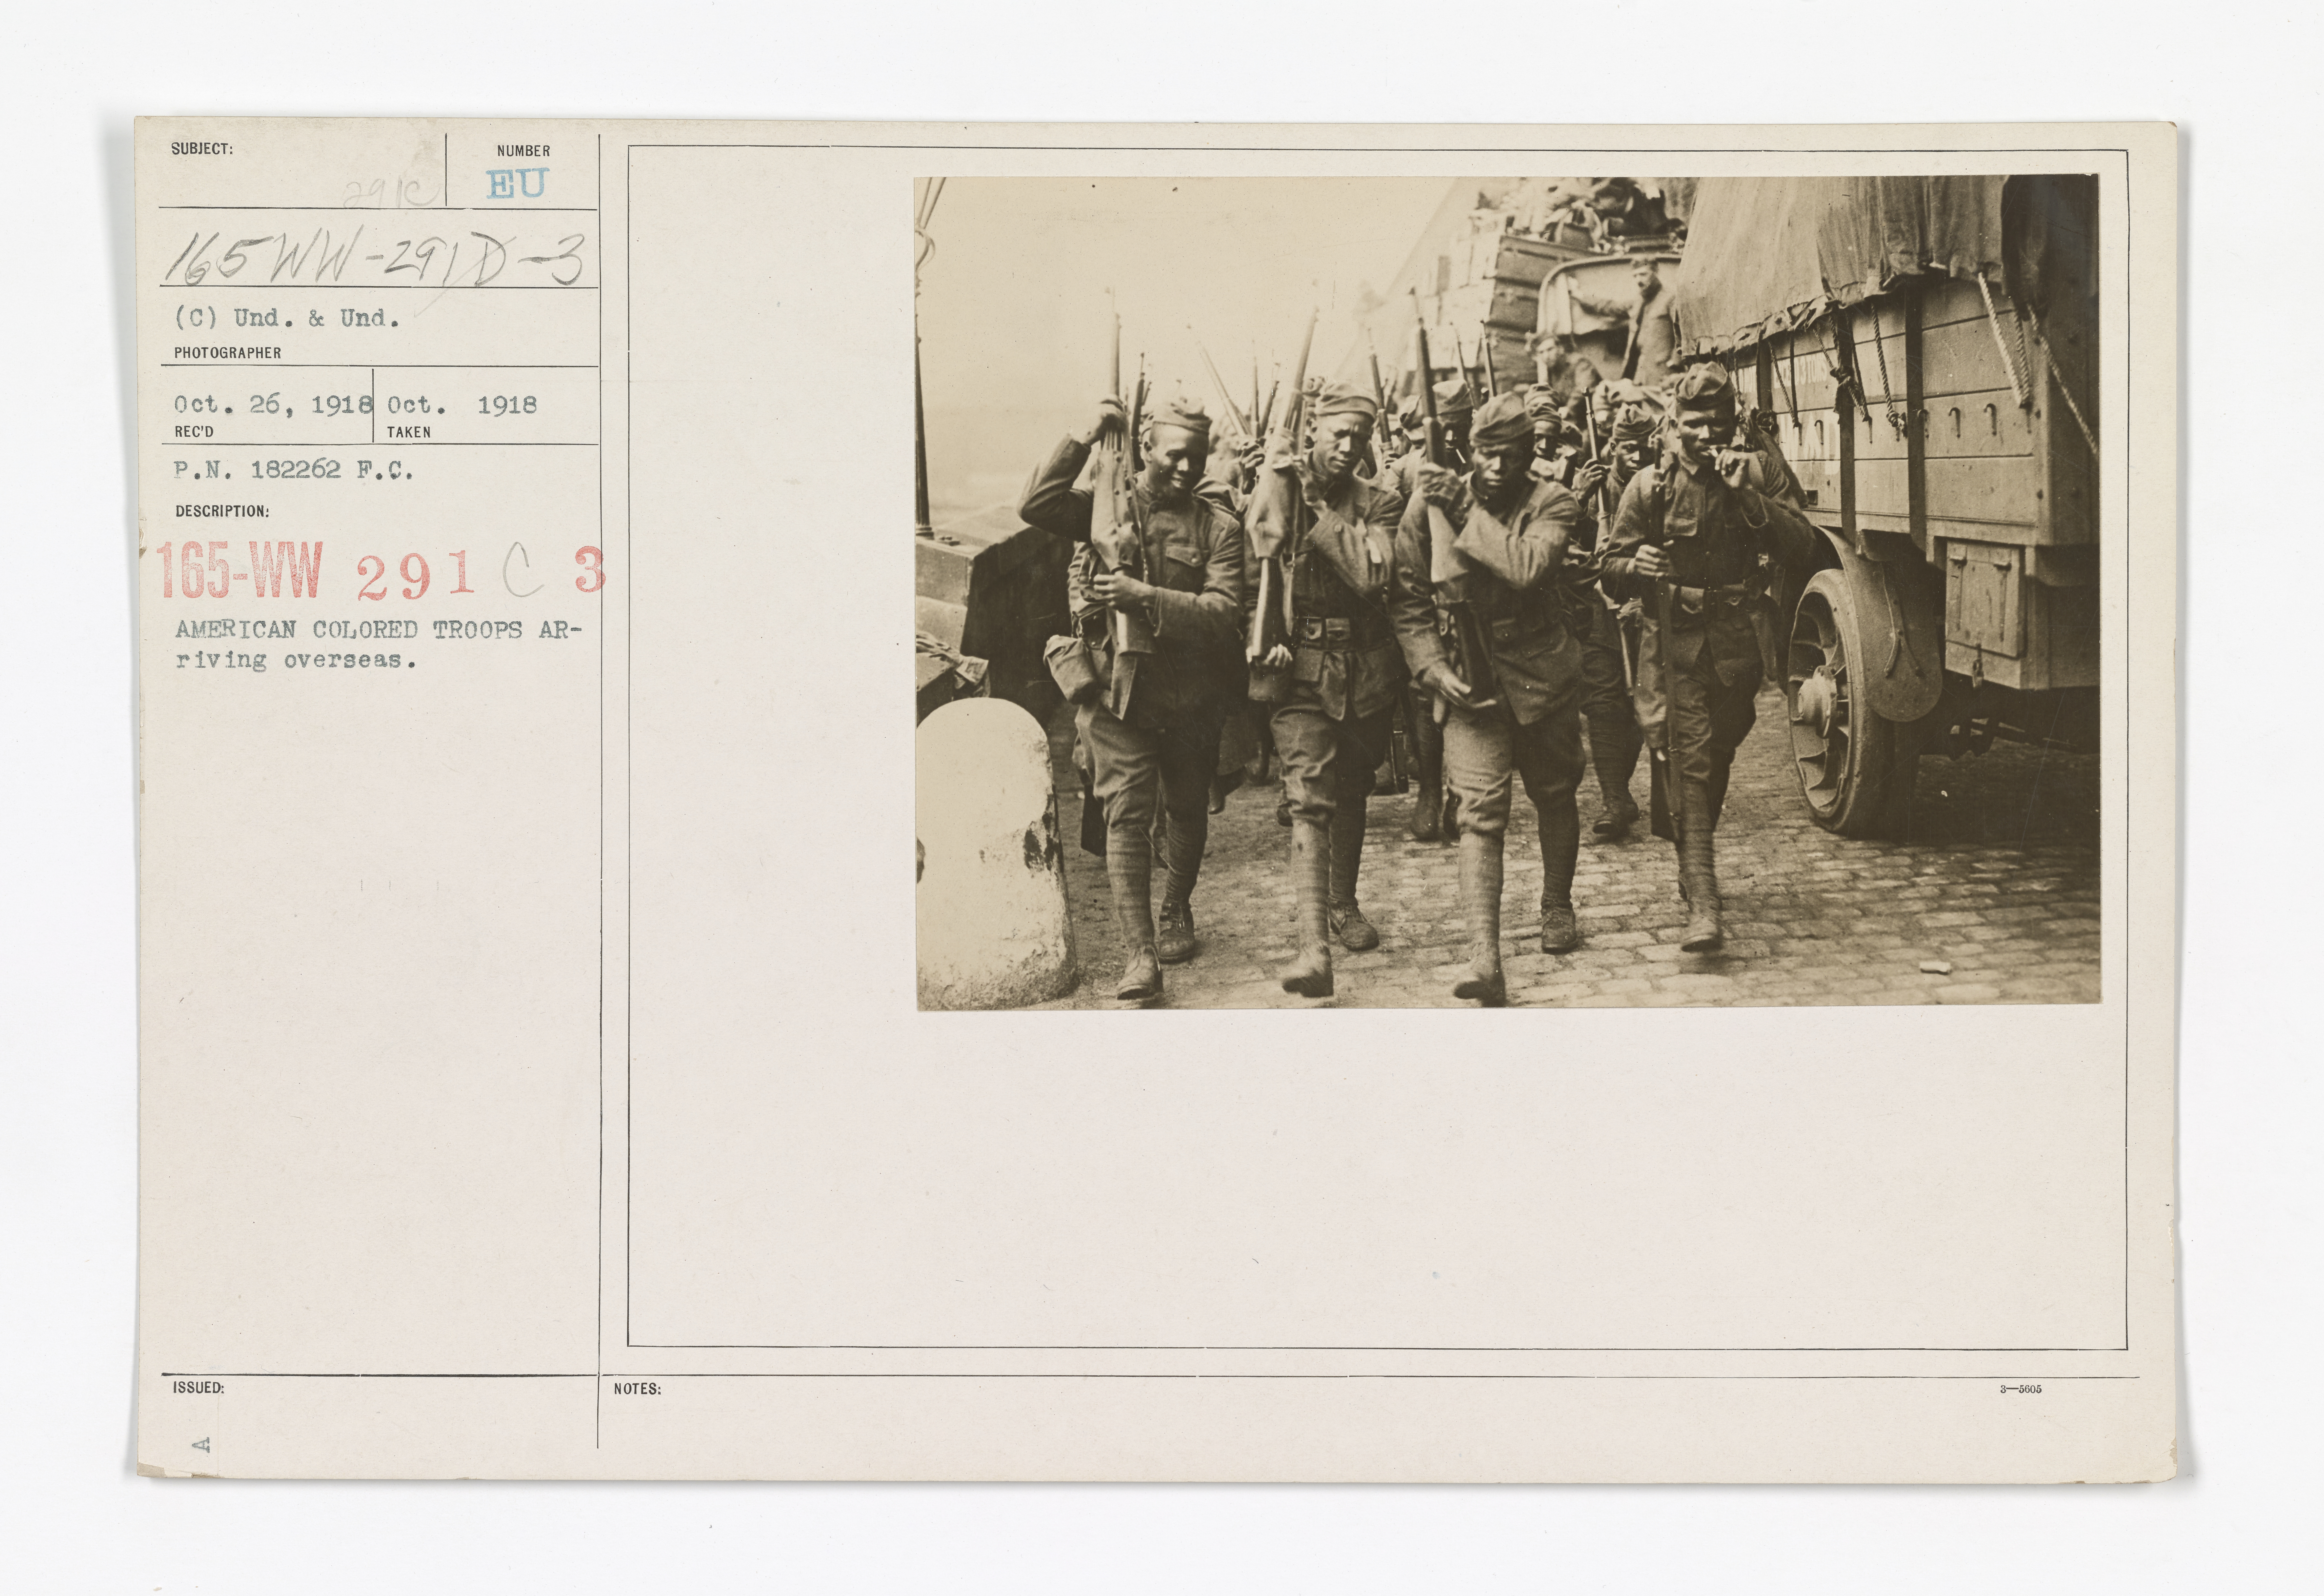 Military Operations - Debarkation & Embarking - American colored troops arriving overseas